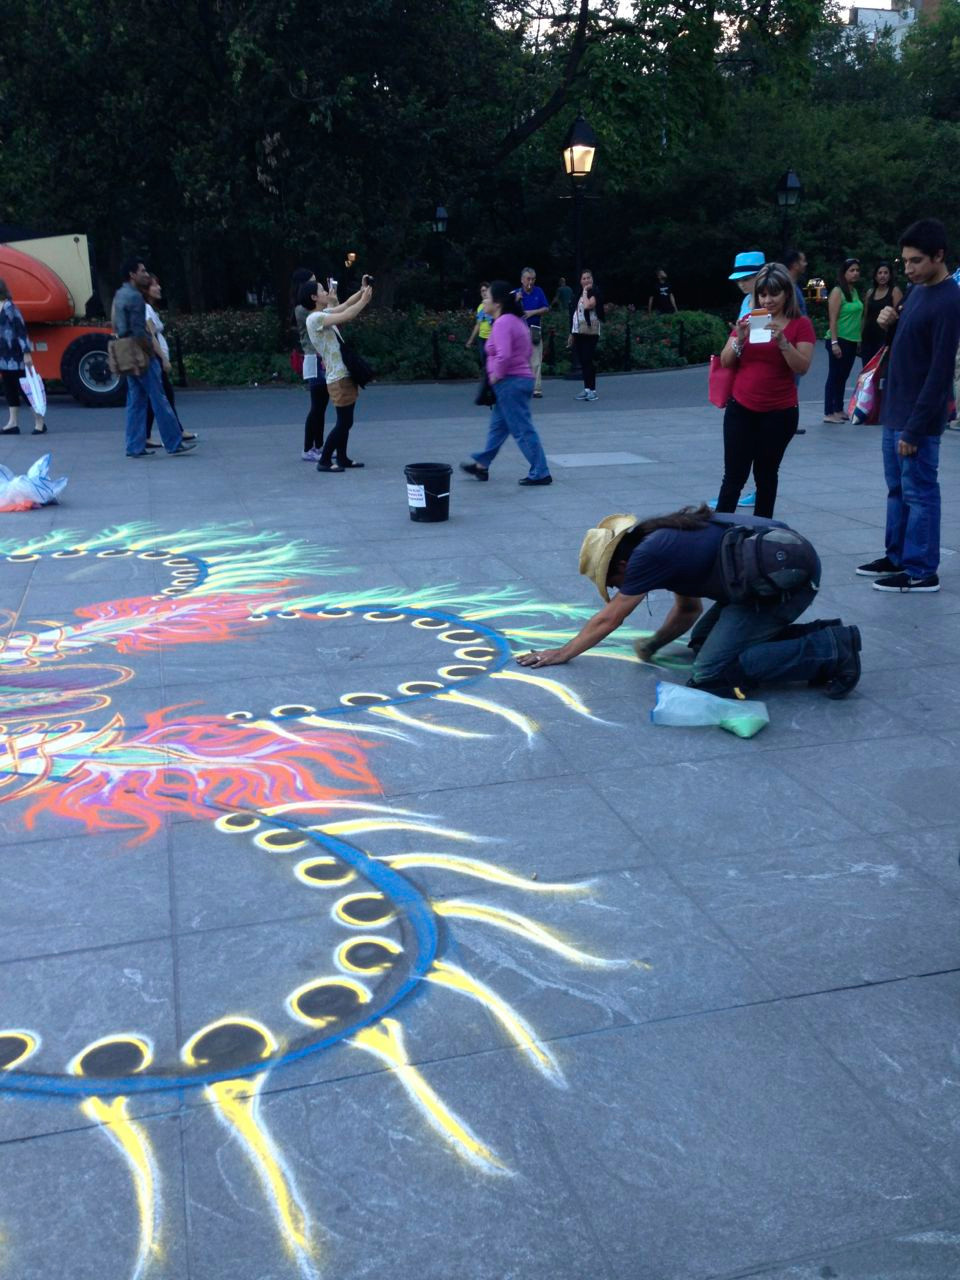 Joe Mangrum at work on a sand paining in Washington Square Park